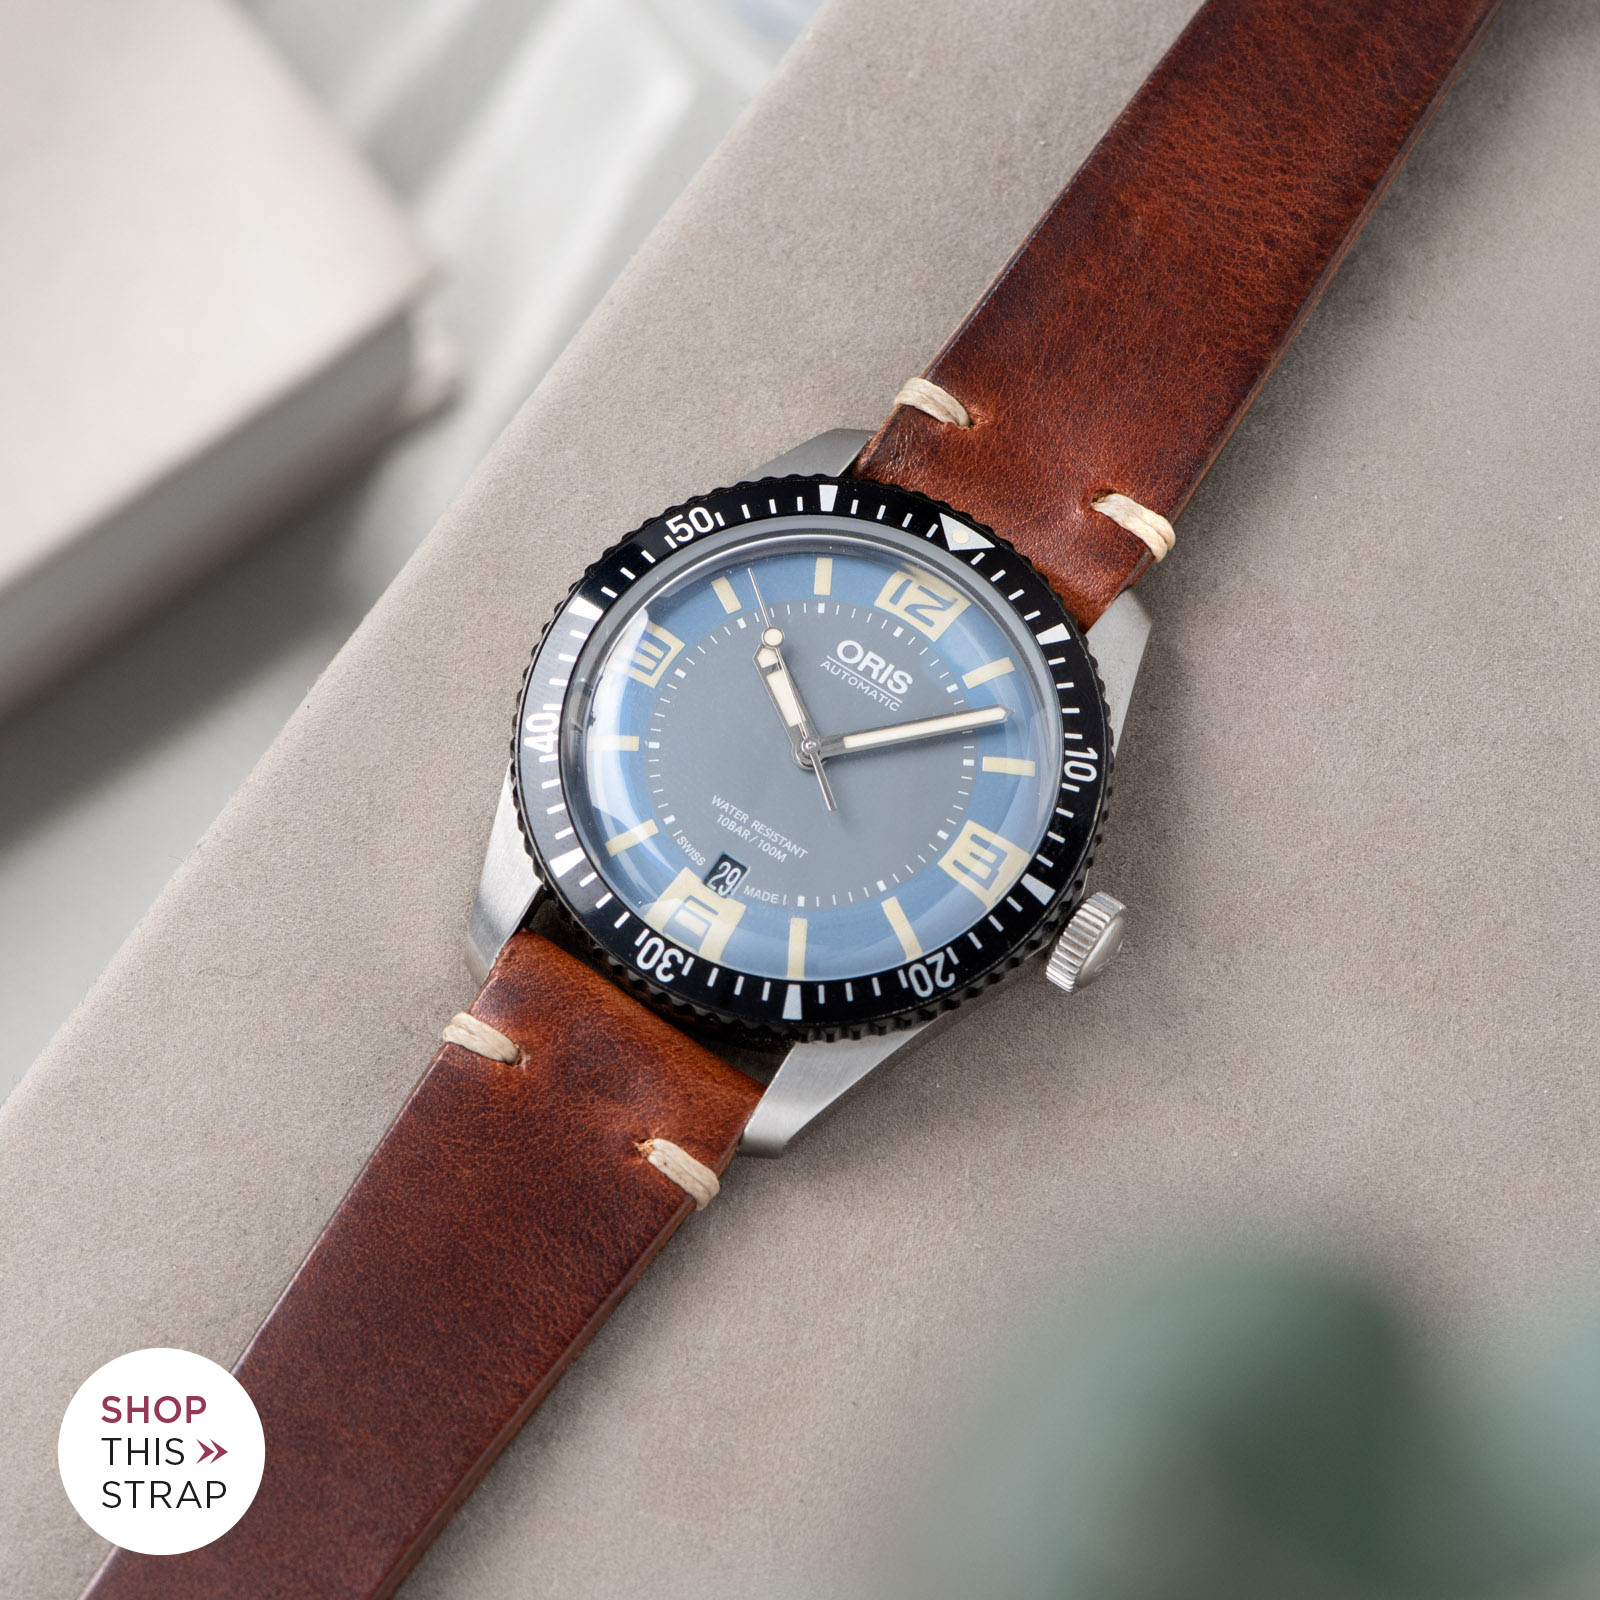 Bulang and Sons_Strap Guide_Oris Automatic Divers Sixty-Five Deaville_SIENA BROWN LEATHER WATCH STRAP